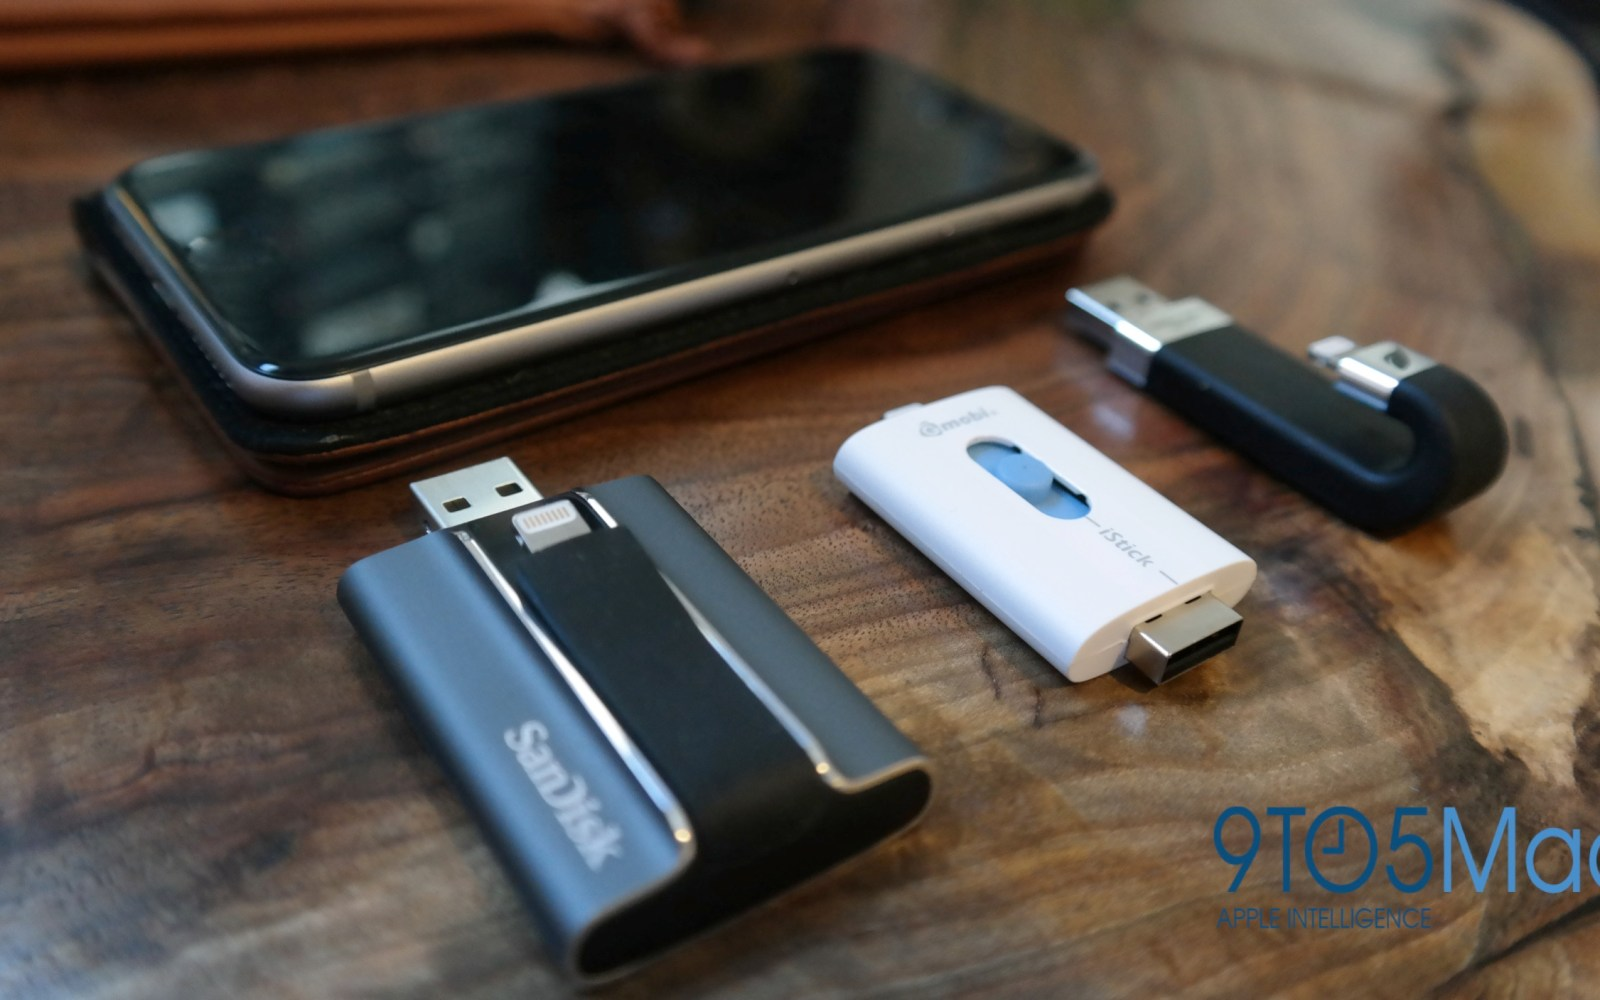 The best iPhone/iPad USB flash drives with Lightning connectors